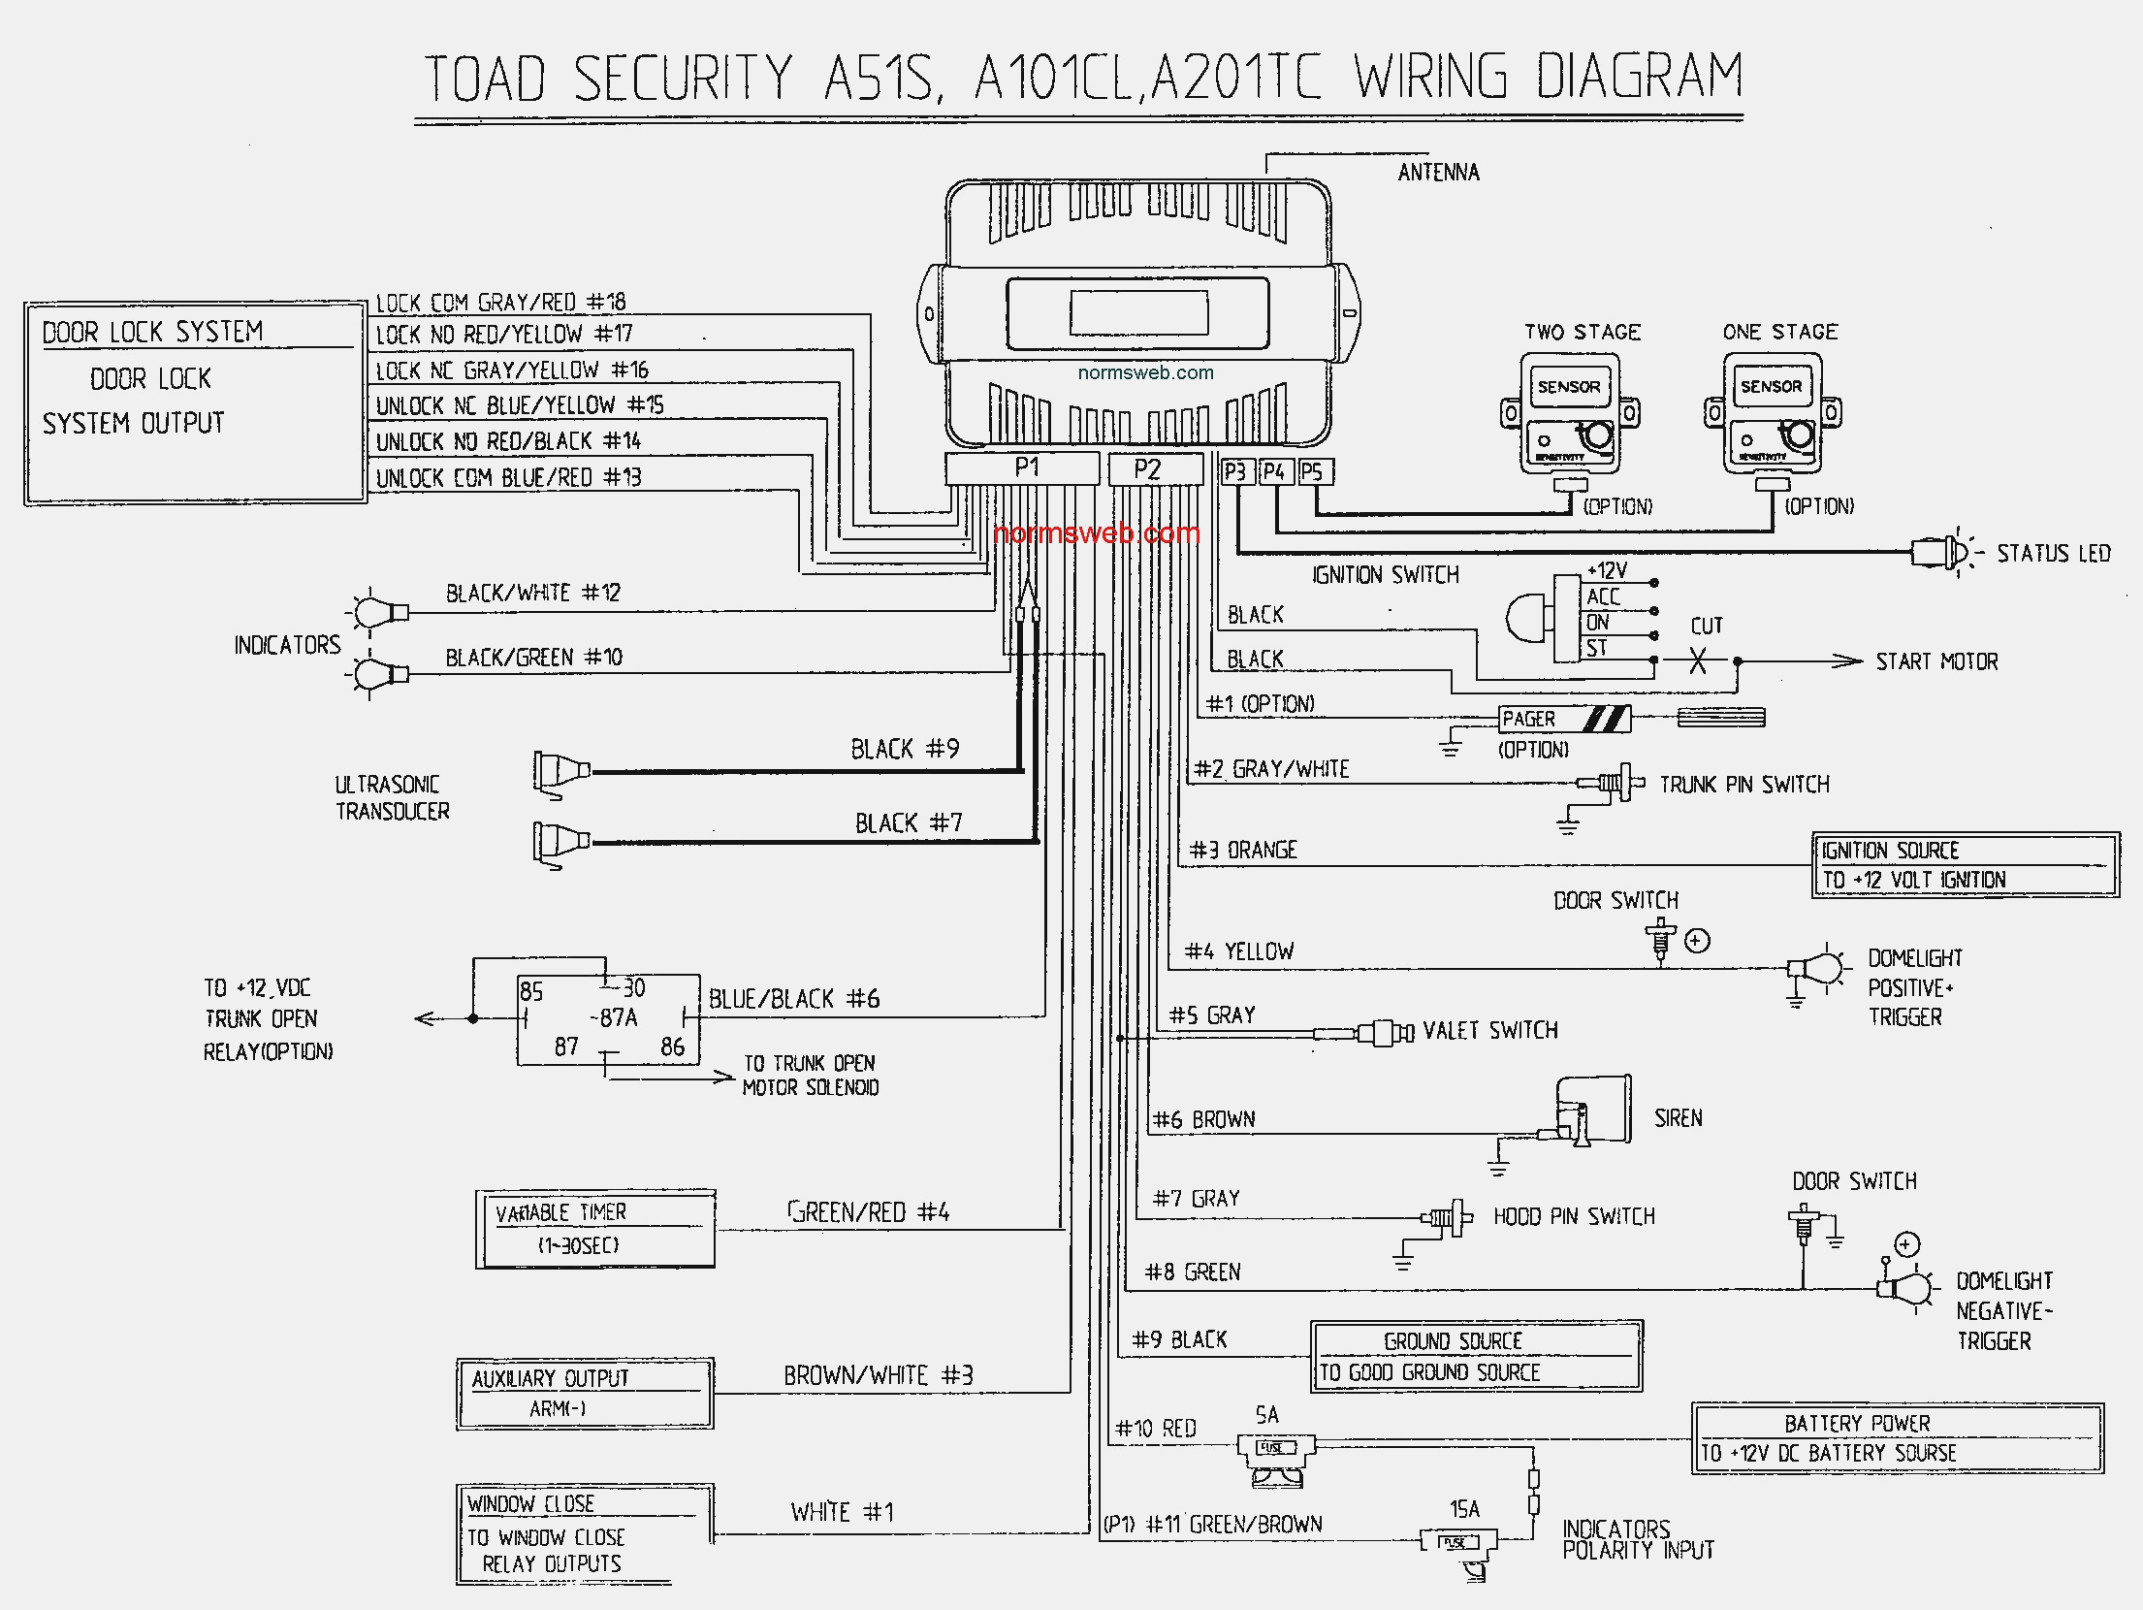 [SCHEMATICS_48YU]  Viper 5900 Alarm Wiring Diagram - Serial To Ethernet Wiring Diagram for Wiring  Diagram Schematics | Viper 5900 Wiring Diagram |  | Wiring Diagram Schematics